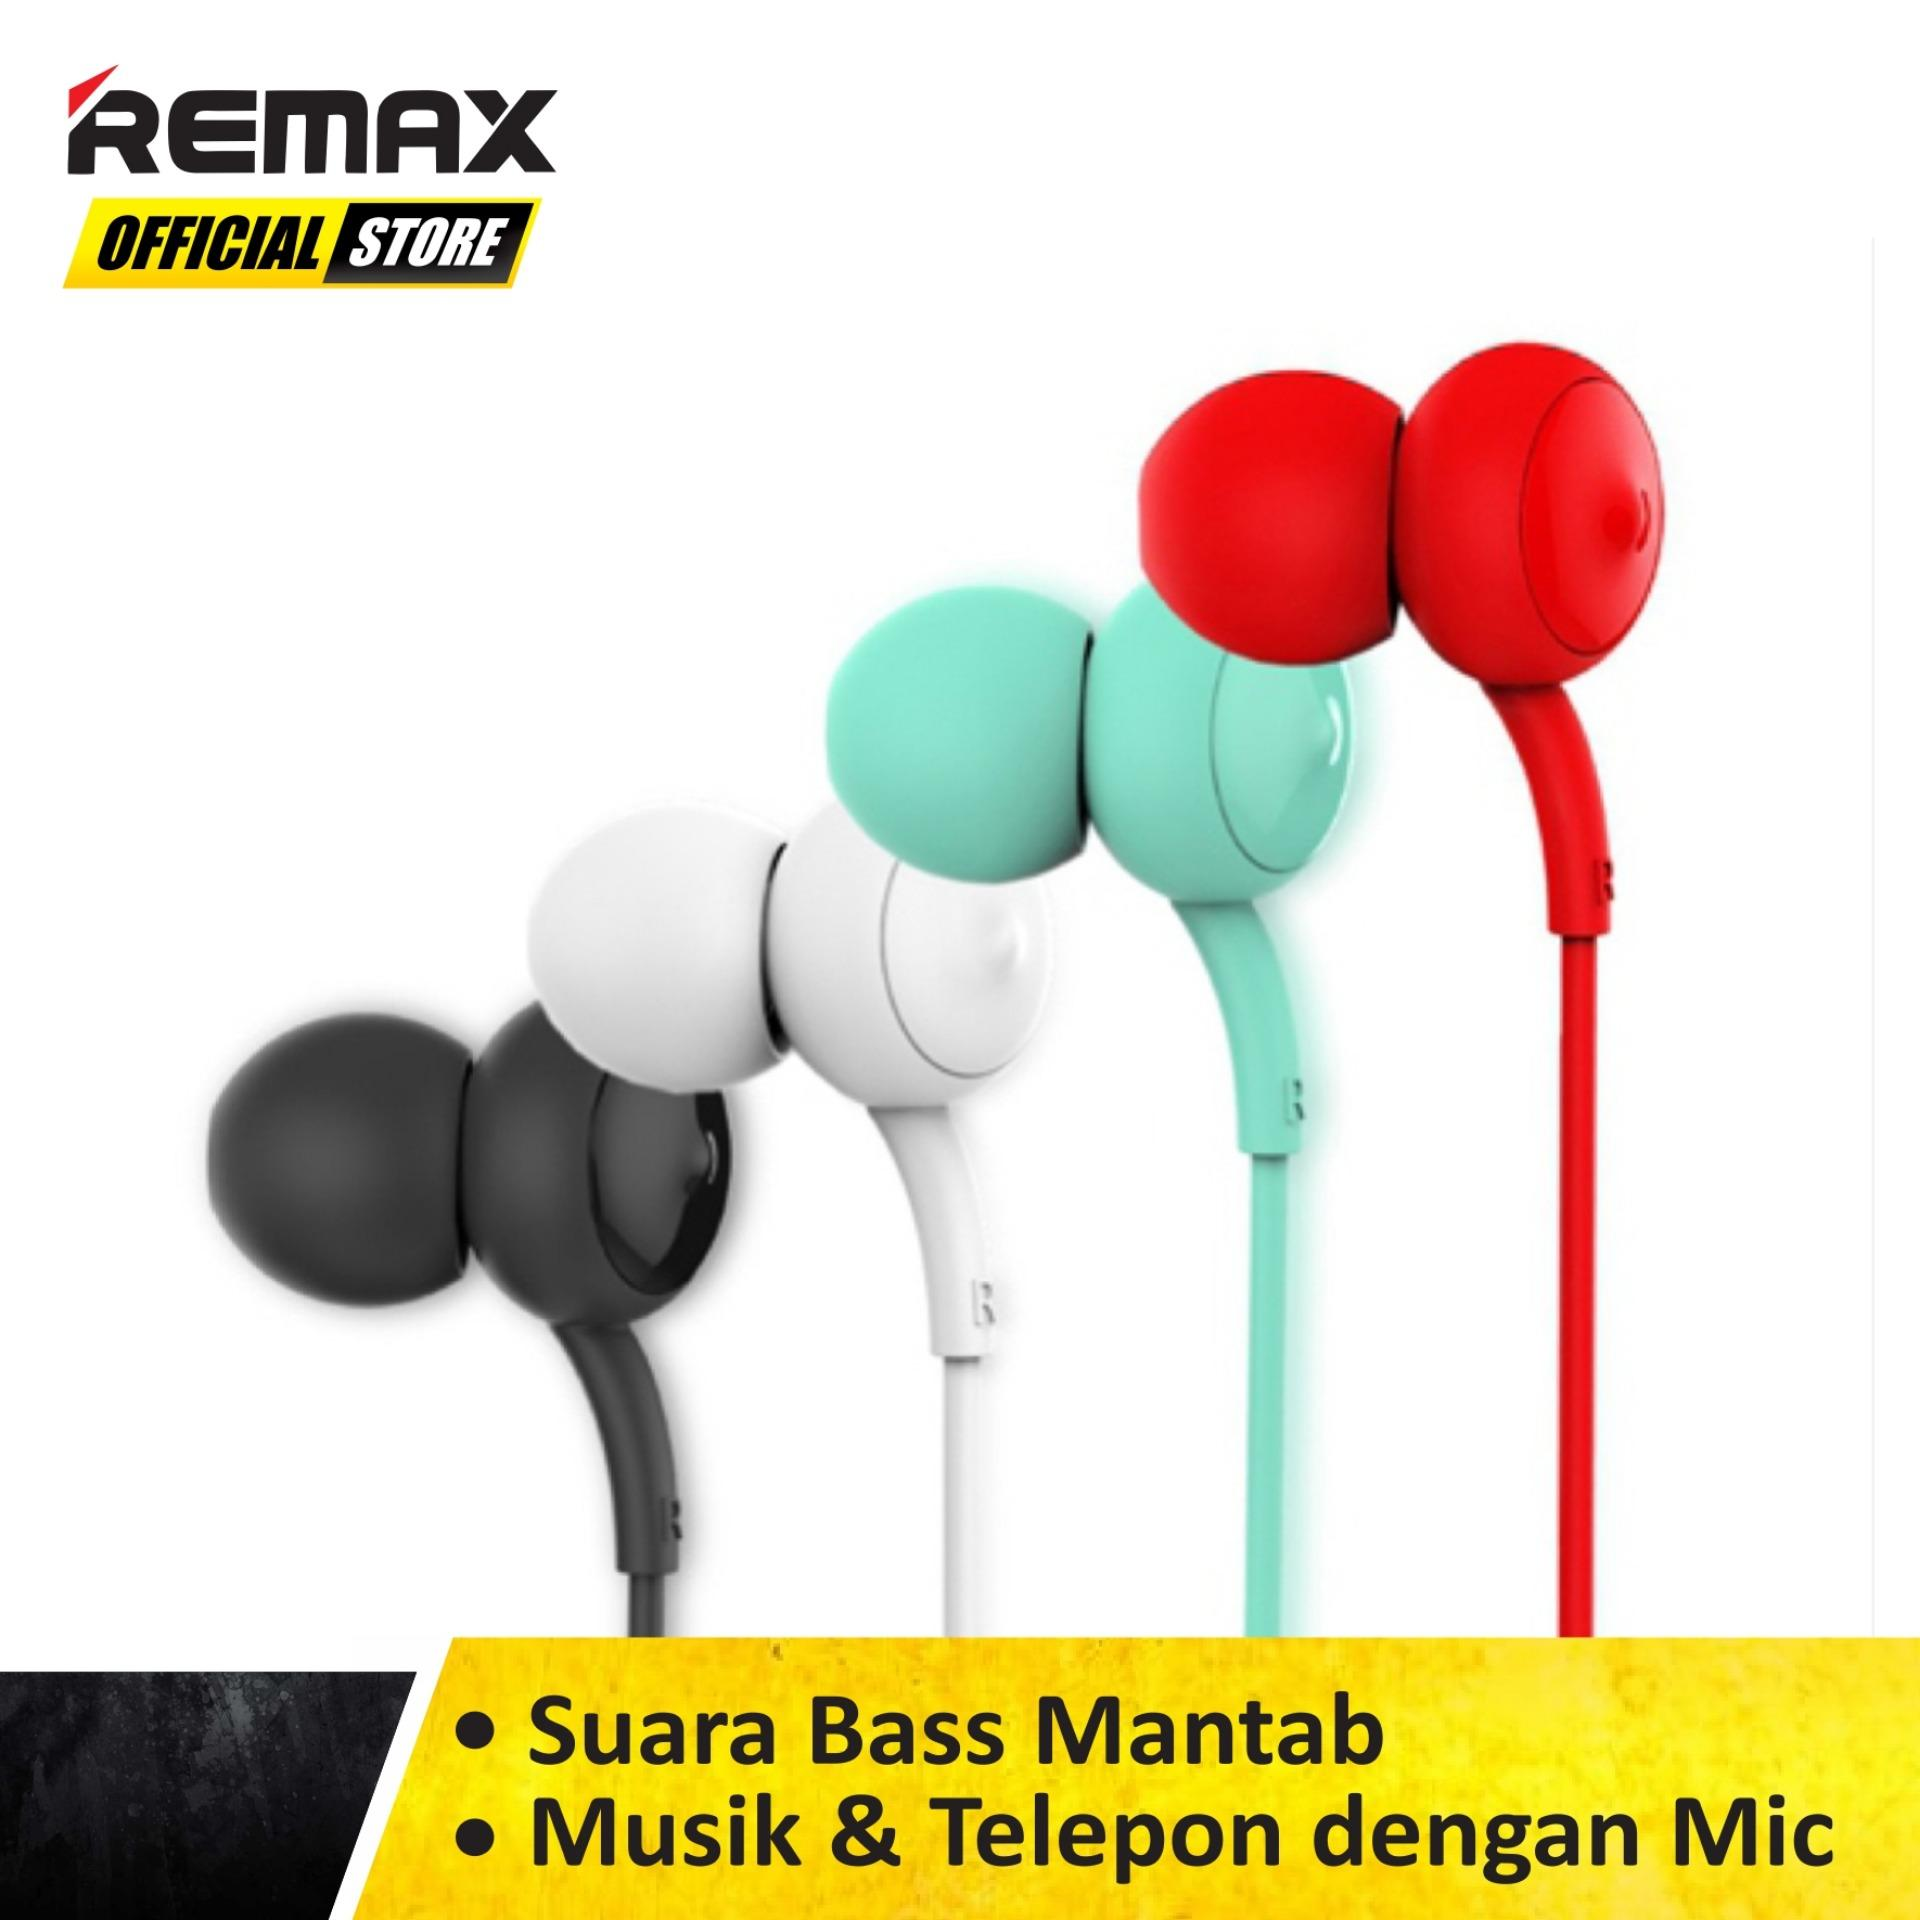 (5). Indonesia. Remax Concave Convex Earphone RM-510 Garansi Resmi    Earphone Murah   Earphone Terbaik   afb1b5a05d